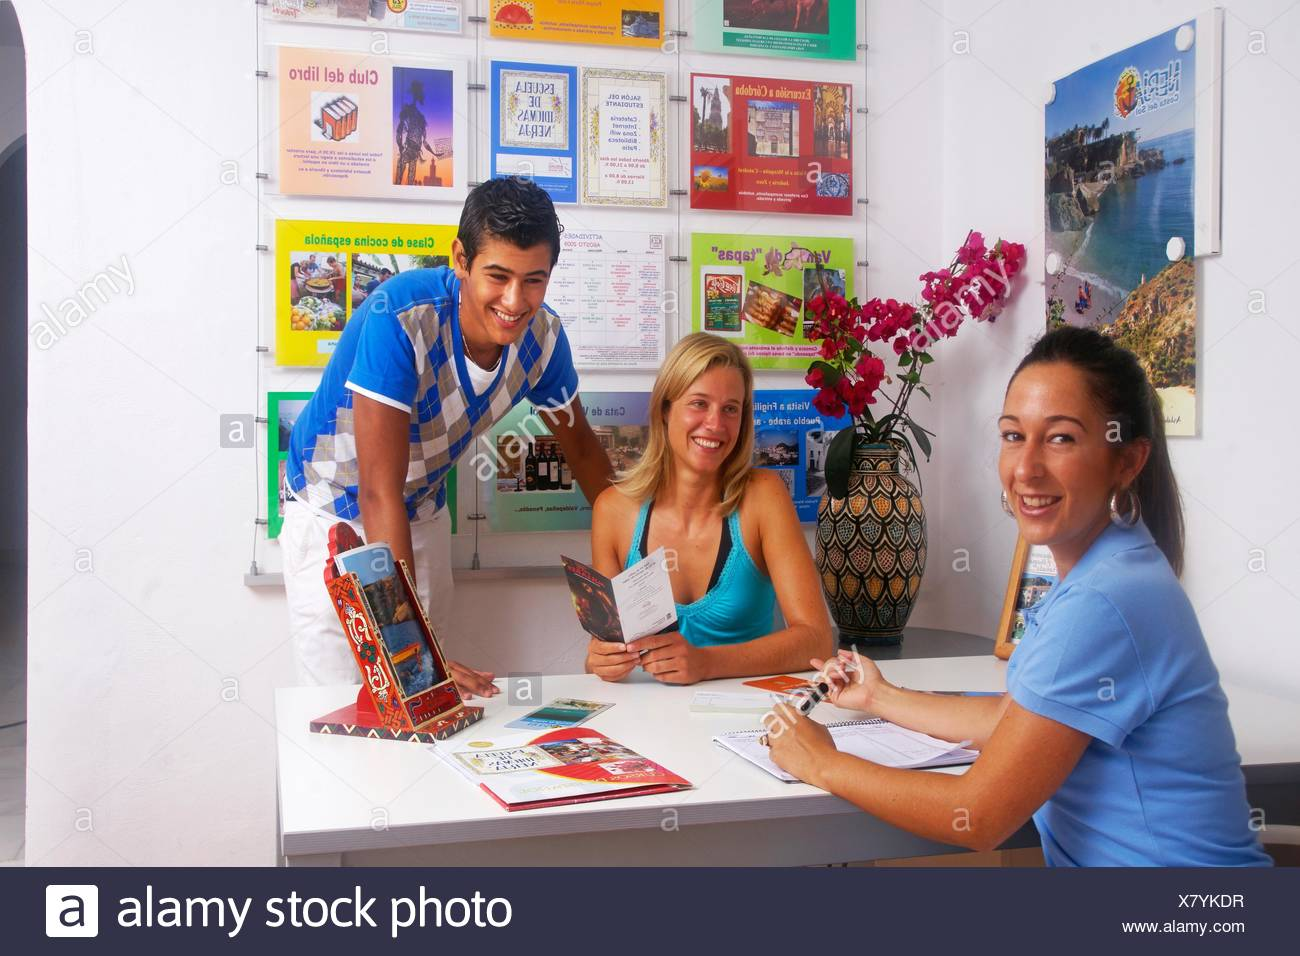 Excursions details at Spanish school for foreigners, Nerja, Malaga province, Andalusia, Spain - Stock Image